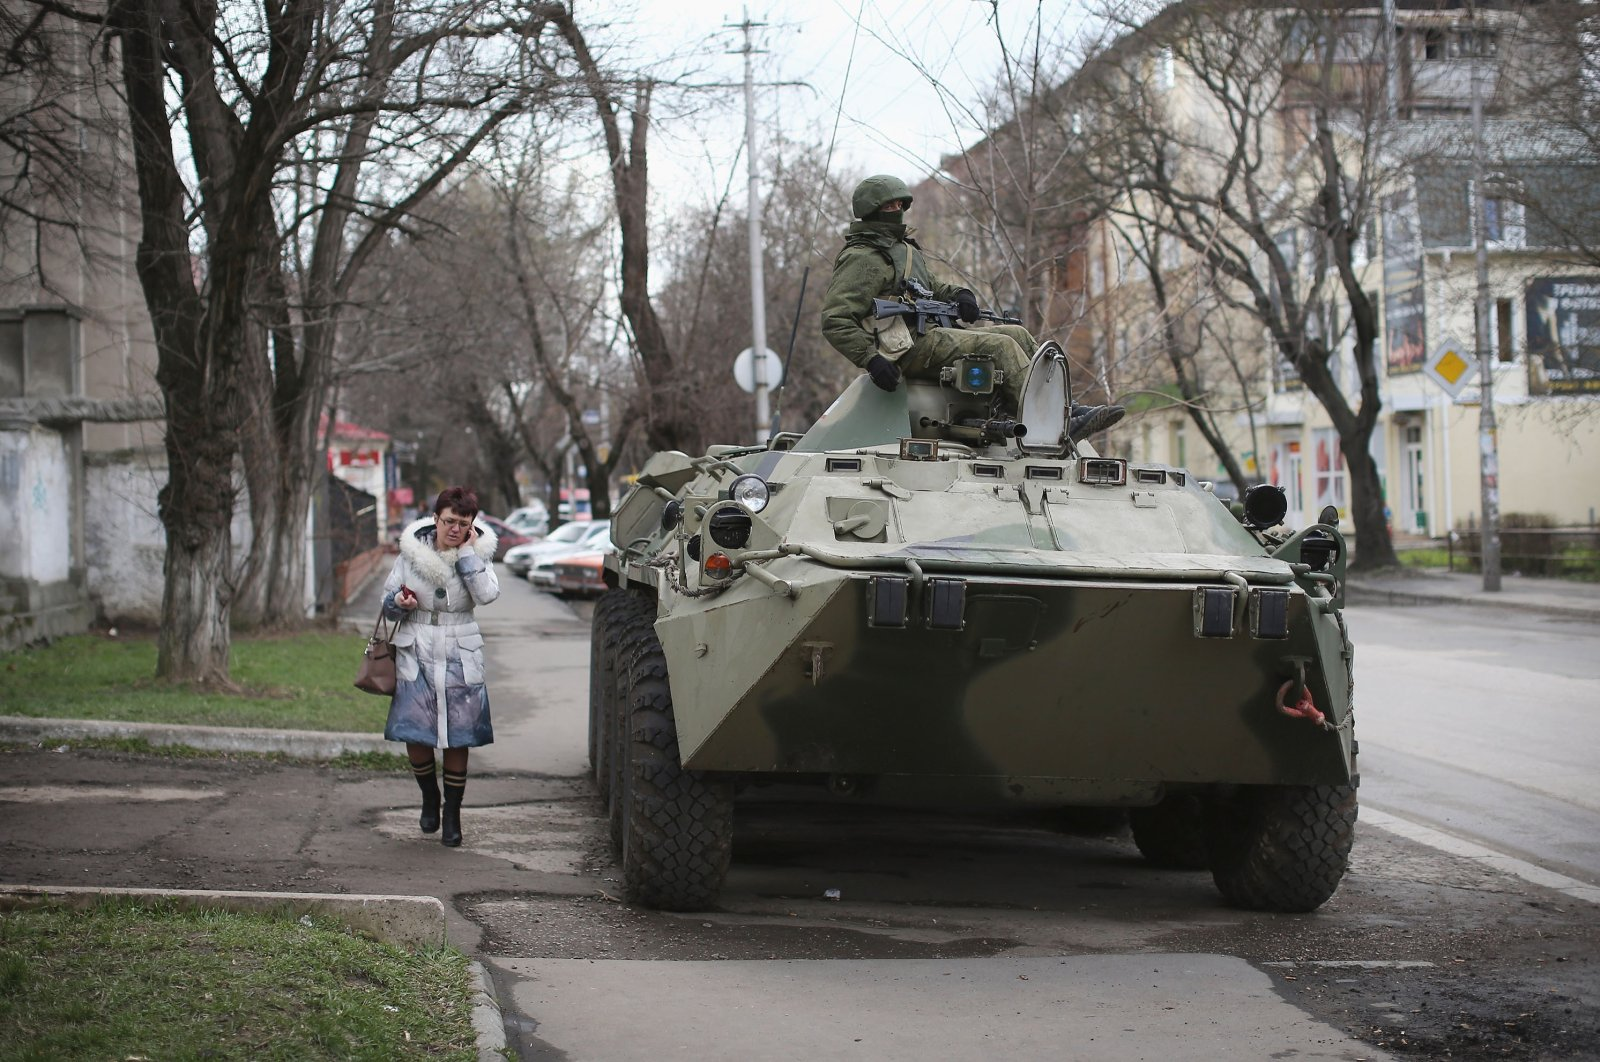 A woman walks past a Russian military personnel carrier outside a Ukrainian military base on March 18, 2014 in Simferopol, Ukraine. (Getty Images)